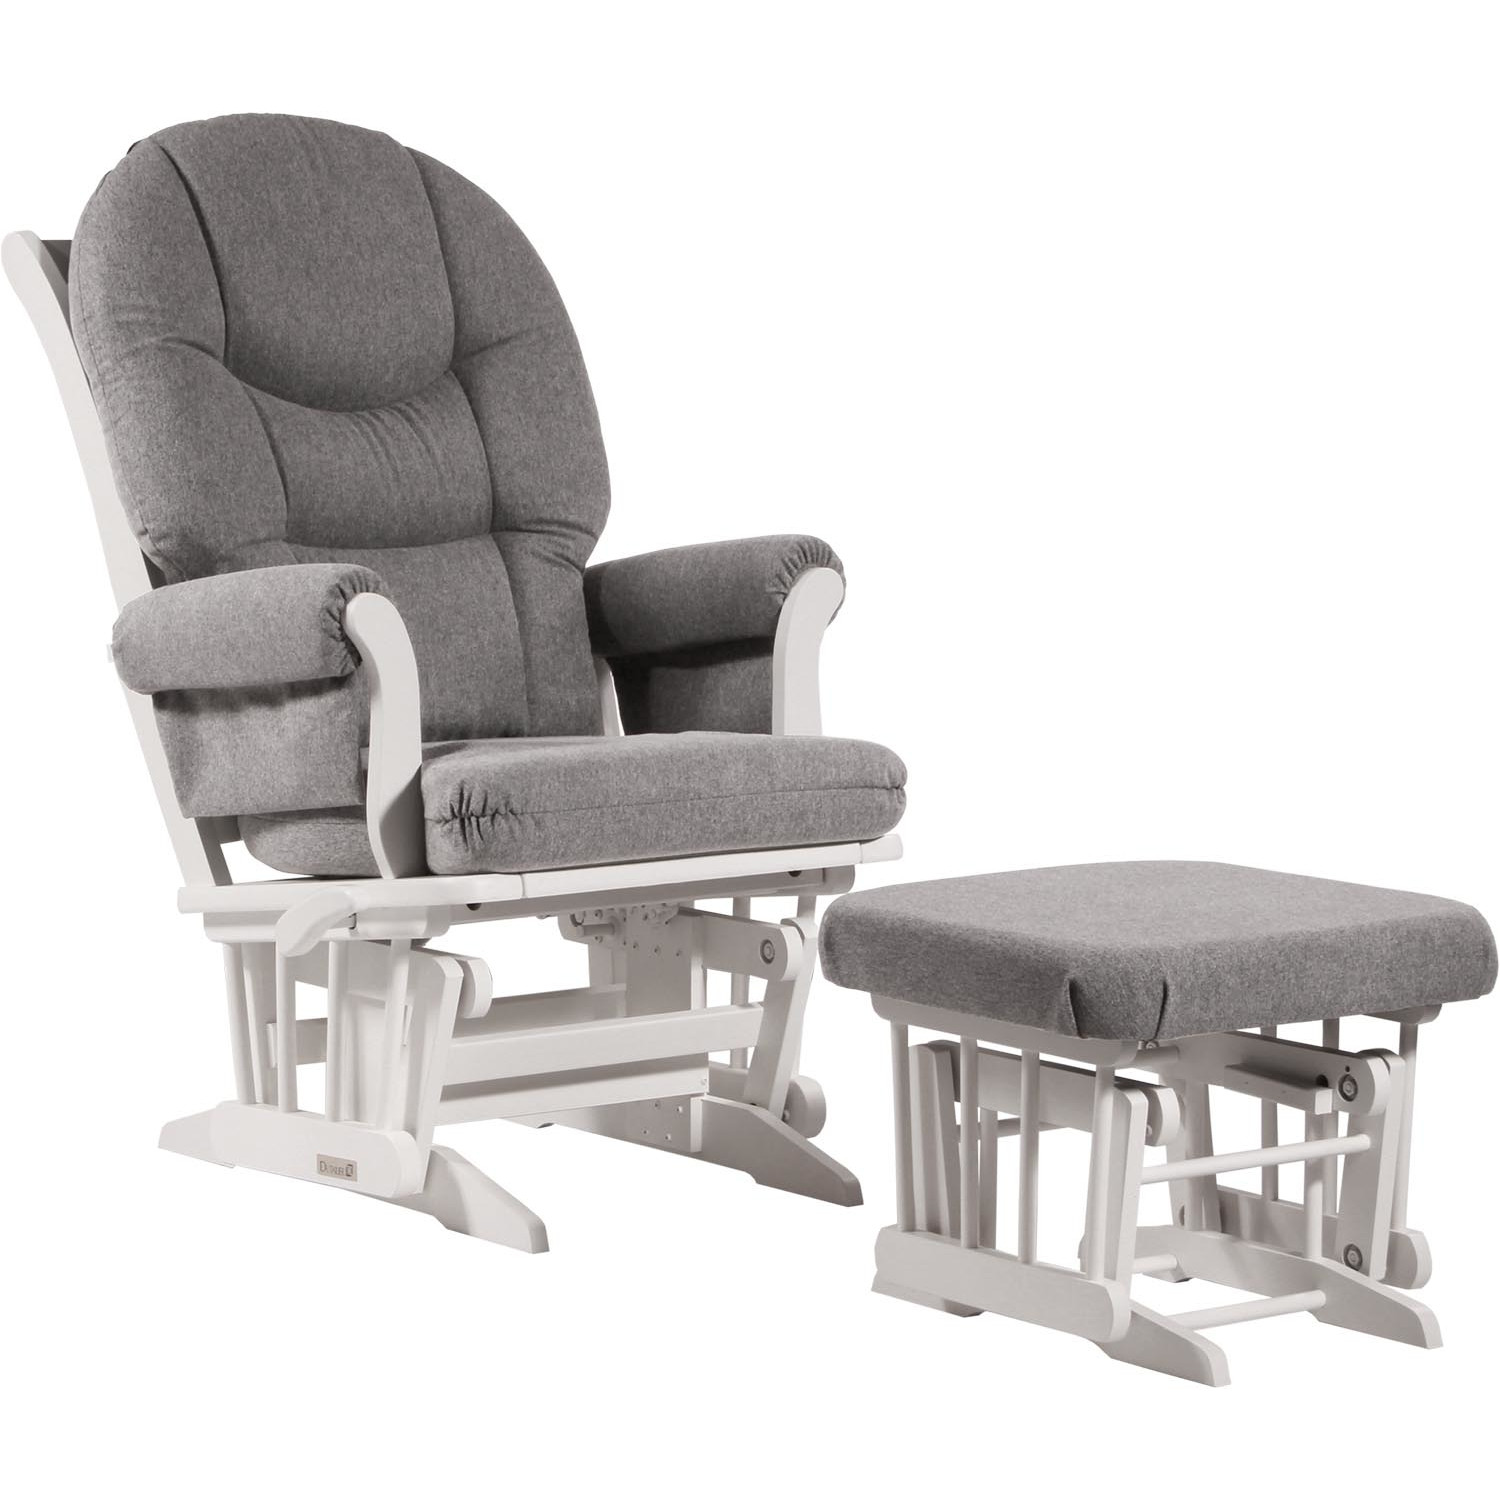 Best Dutailier Ultramotion for Glidder Ideas: Dutailier Ultramotion | Dutailier Modern Grande Glider | Dutailier Glider Recline And Ottoman Combo